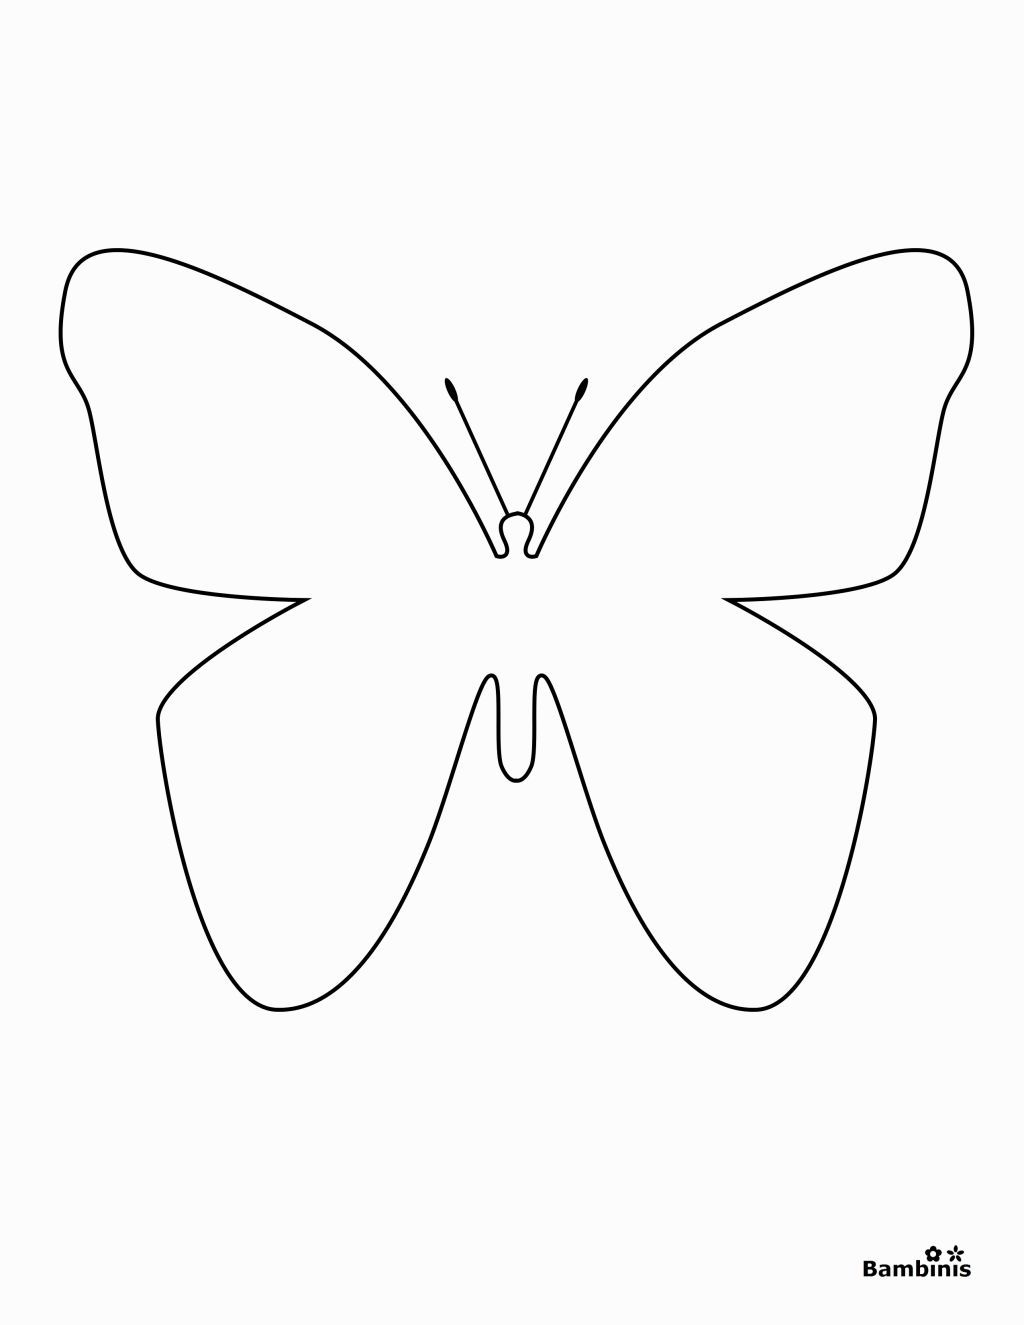 simple easy butterfly coloring pages butterflies to color for kids butterflies kids coloring simple pages easy butterfly coloring